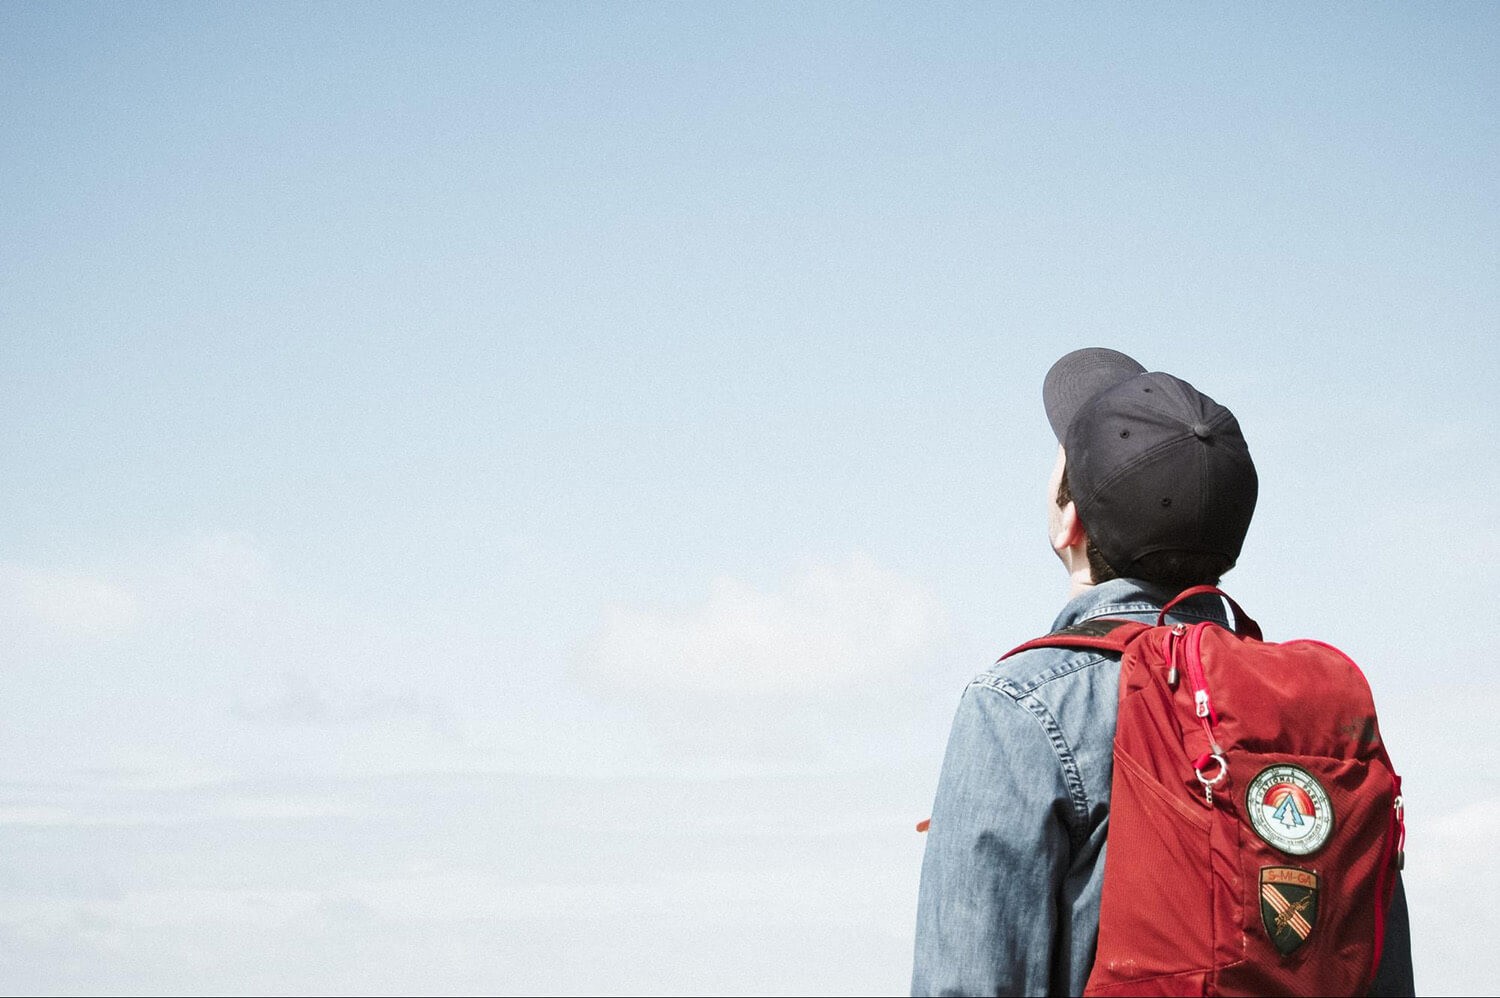 Student with a backpack looking into the sky